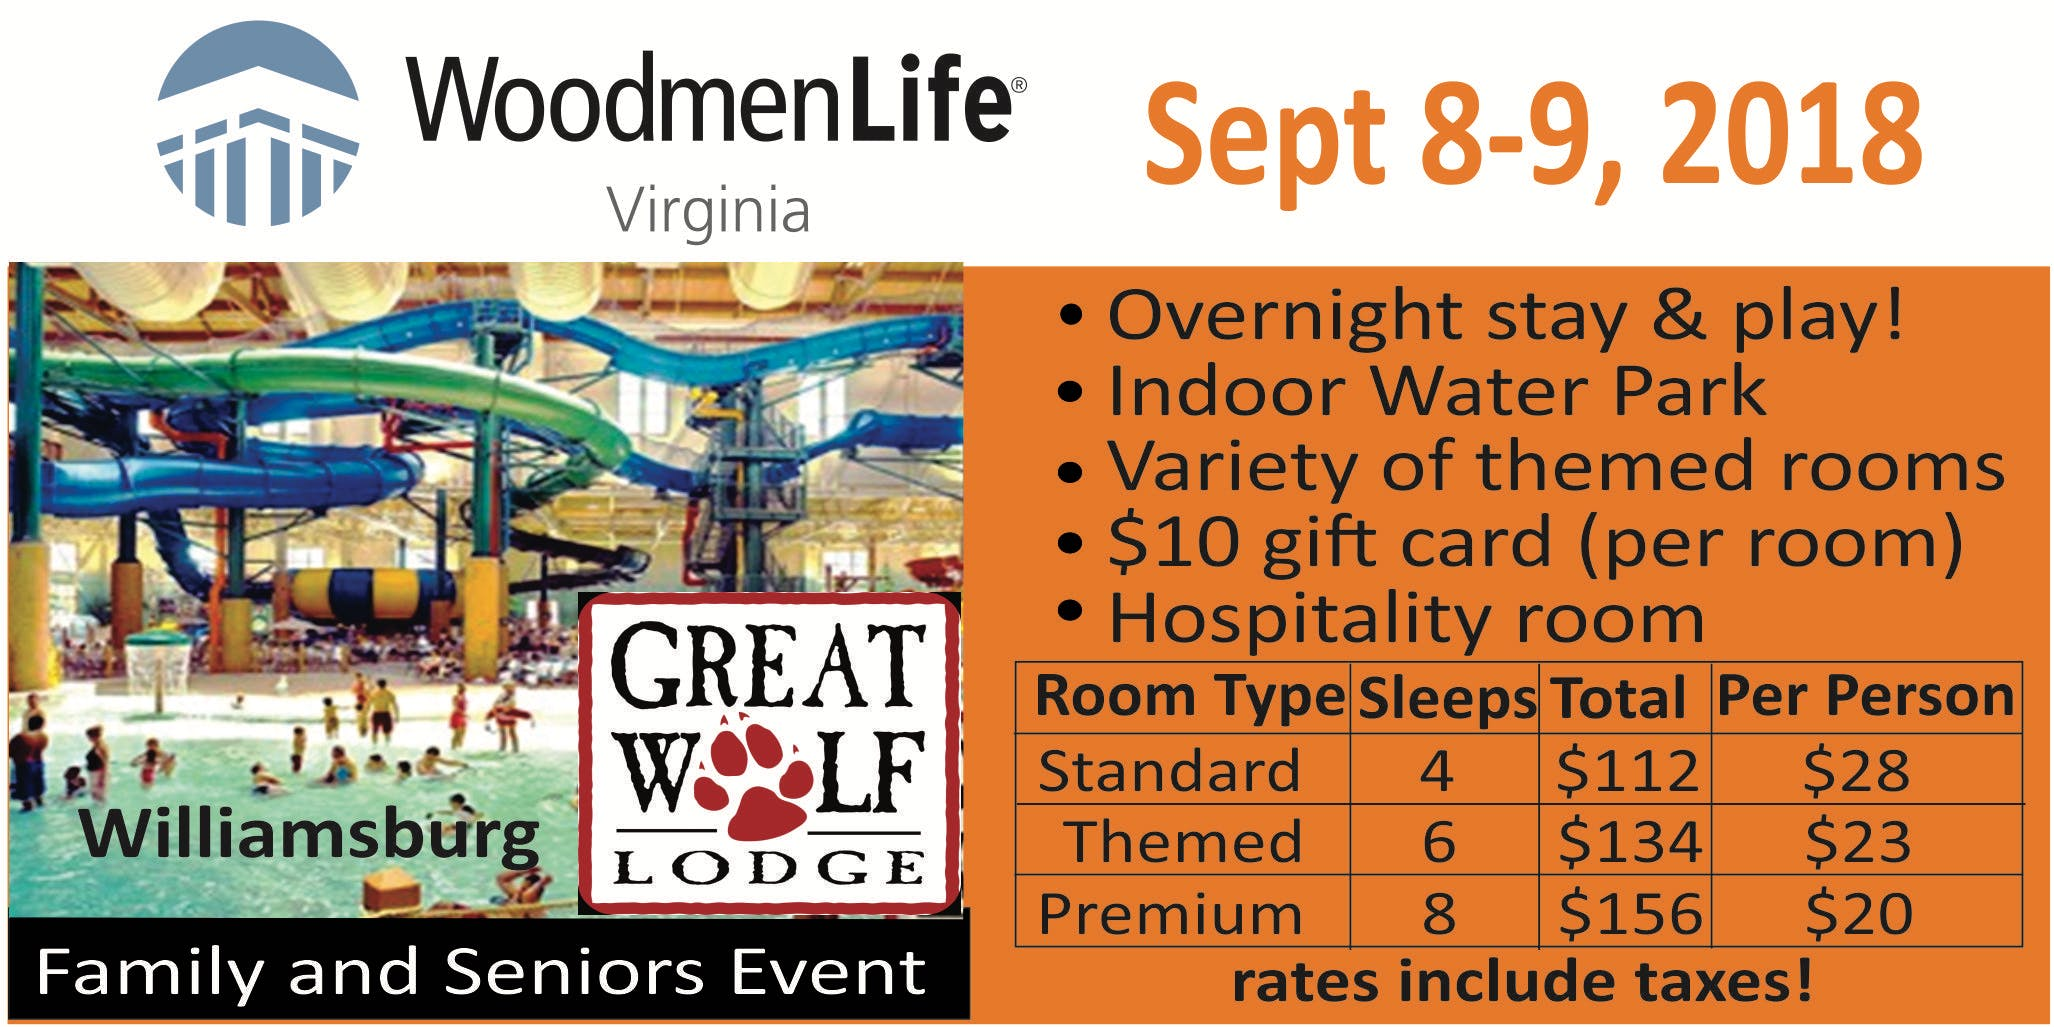 Family Day At Great Wolf Lodge Williamsburg Virginia 8 Sep 2018